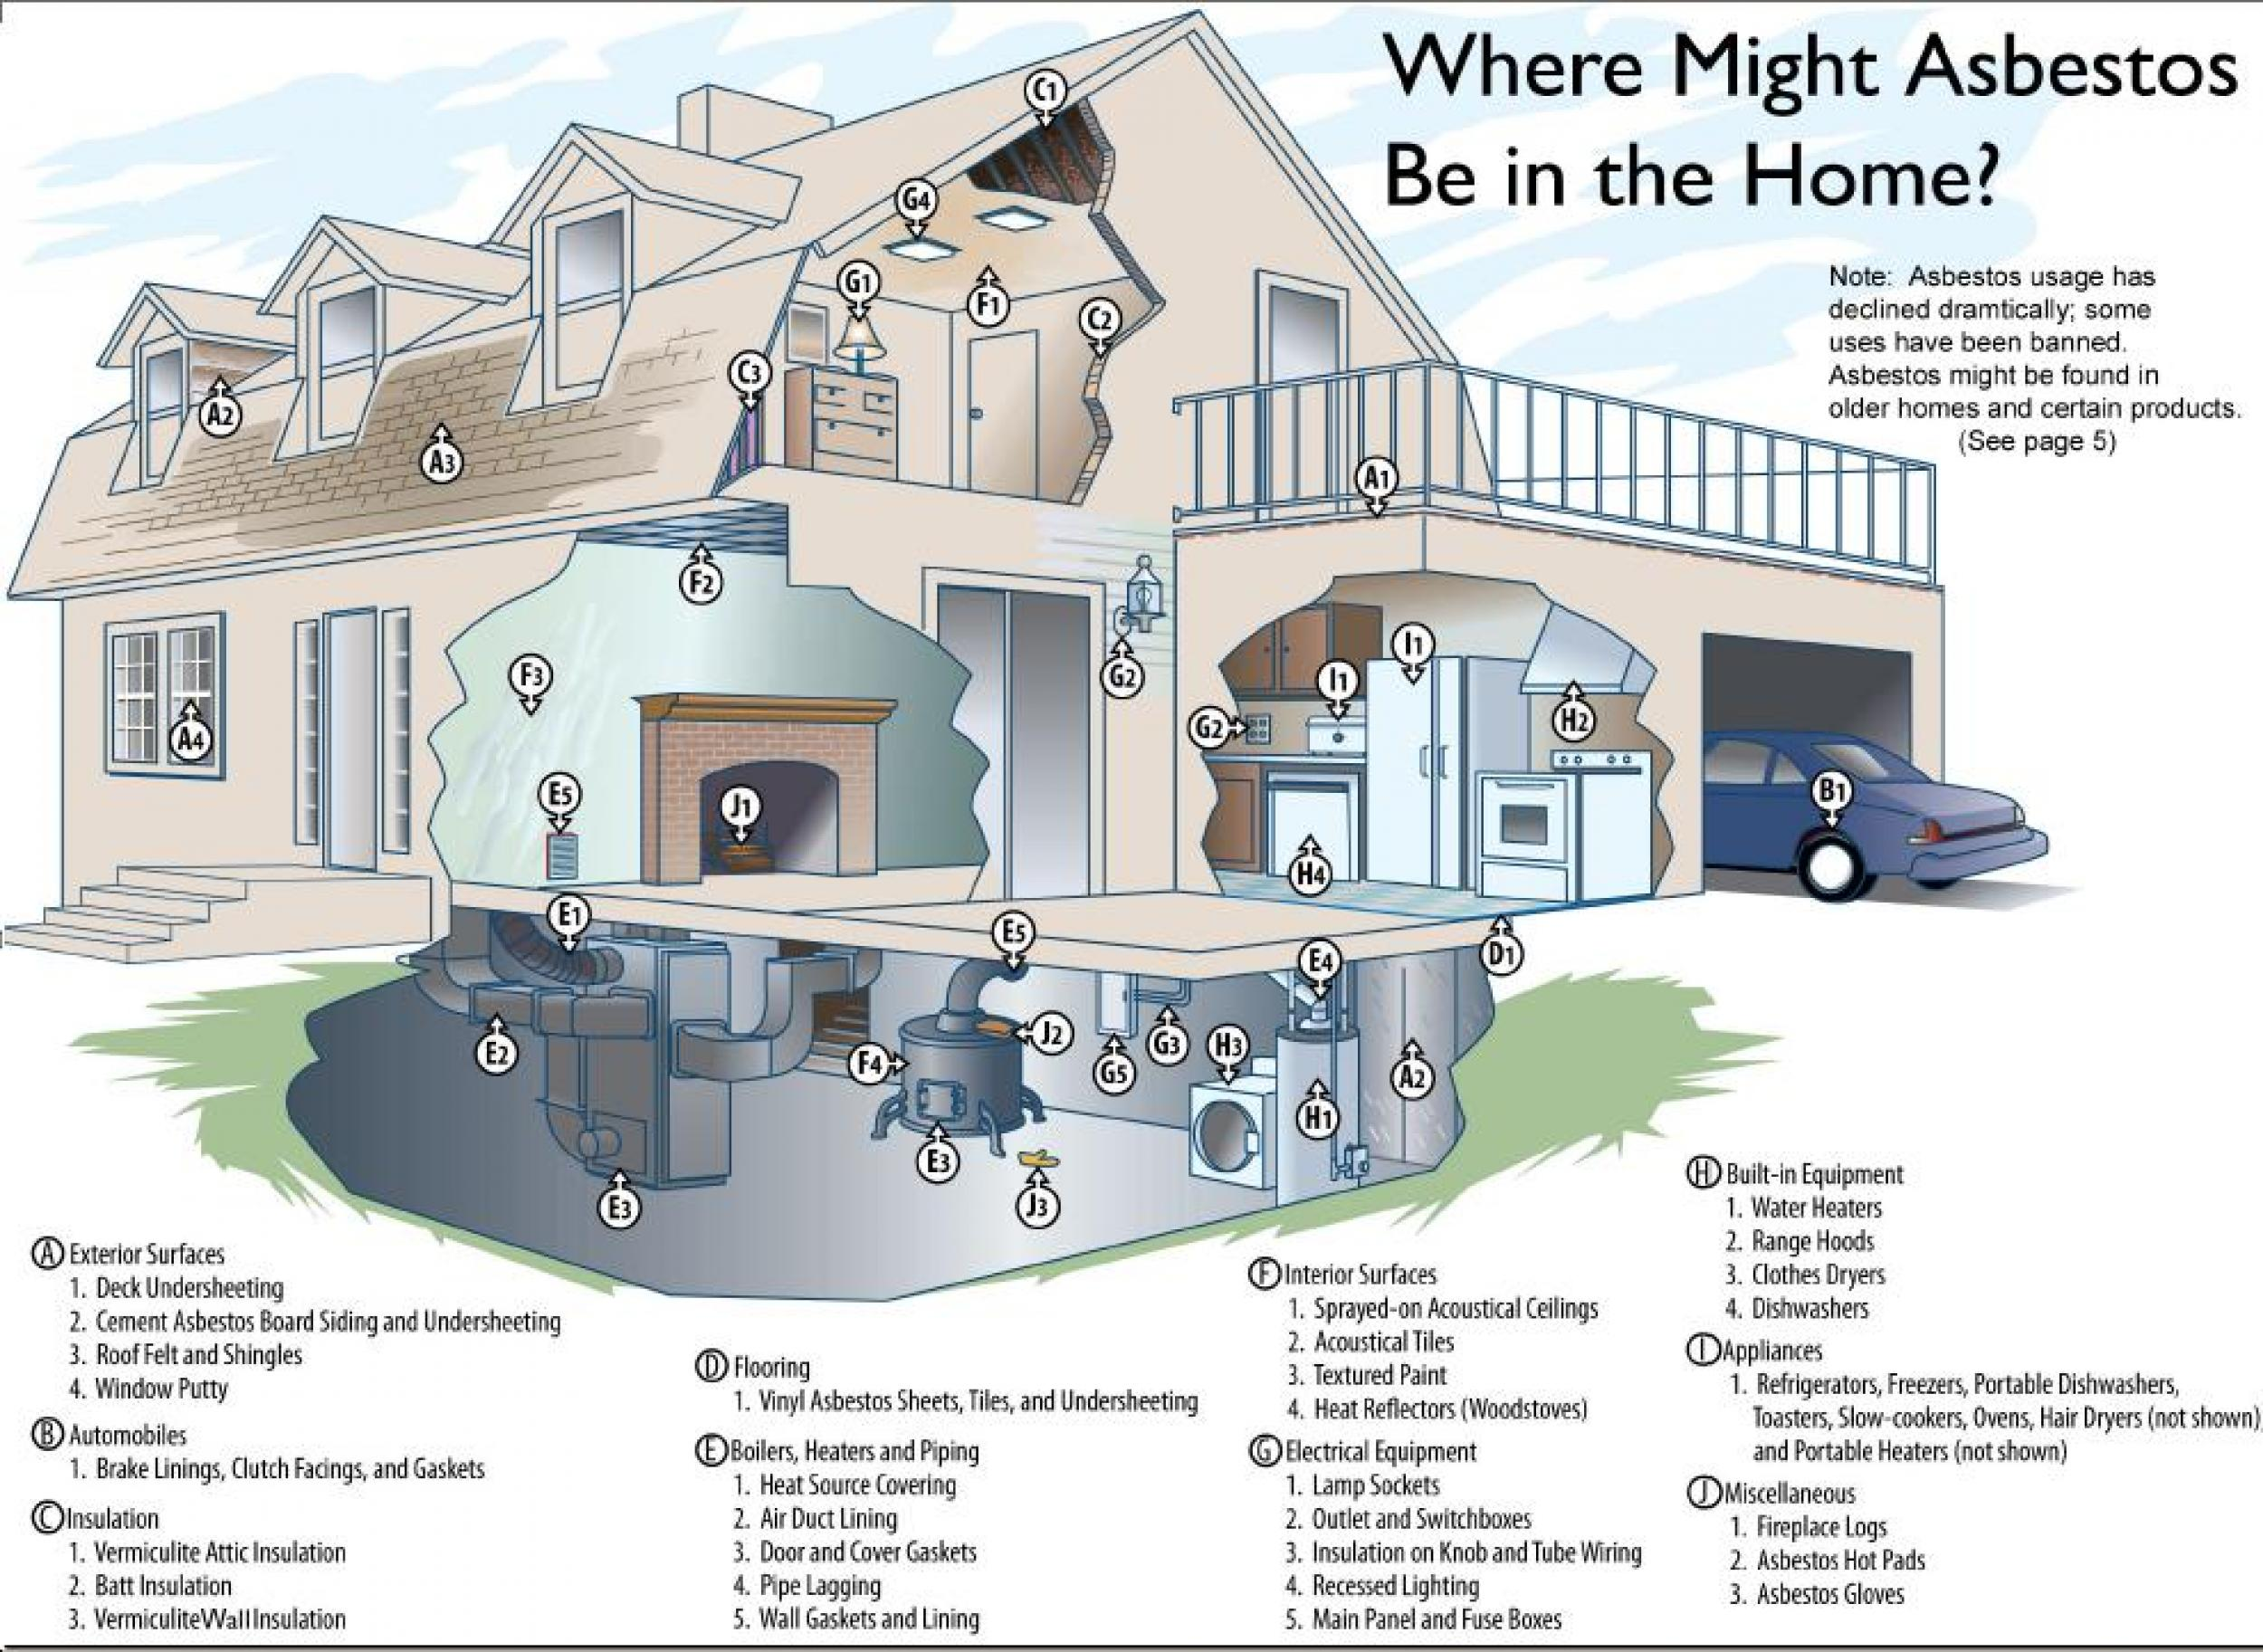 where-should-asbestos-must-be-in-your-home